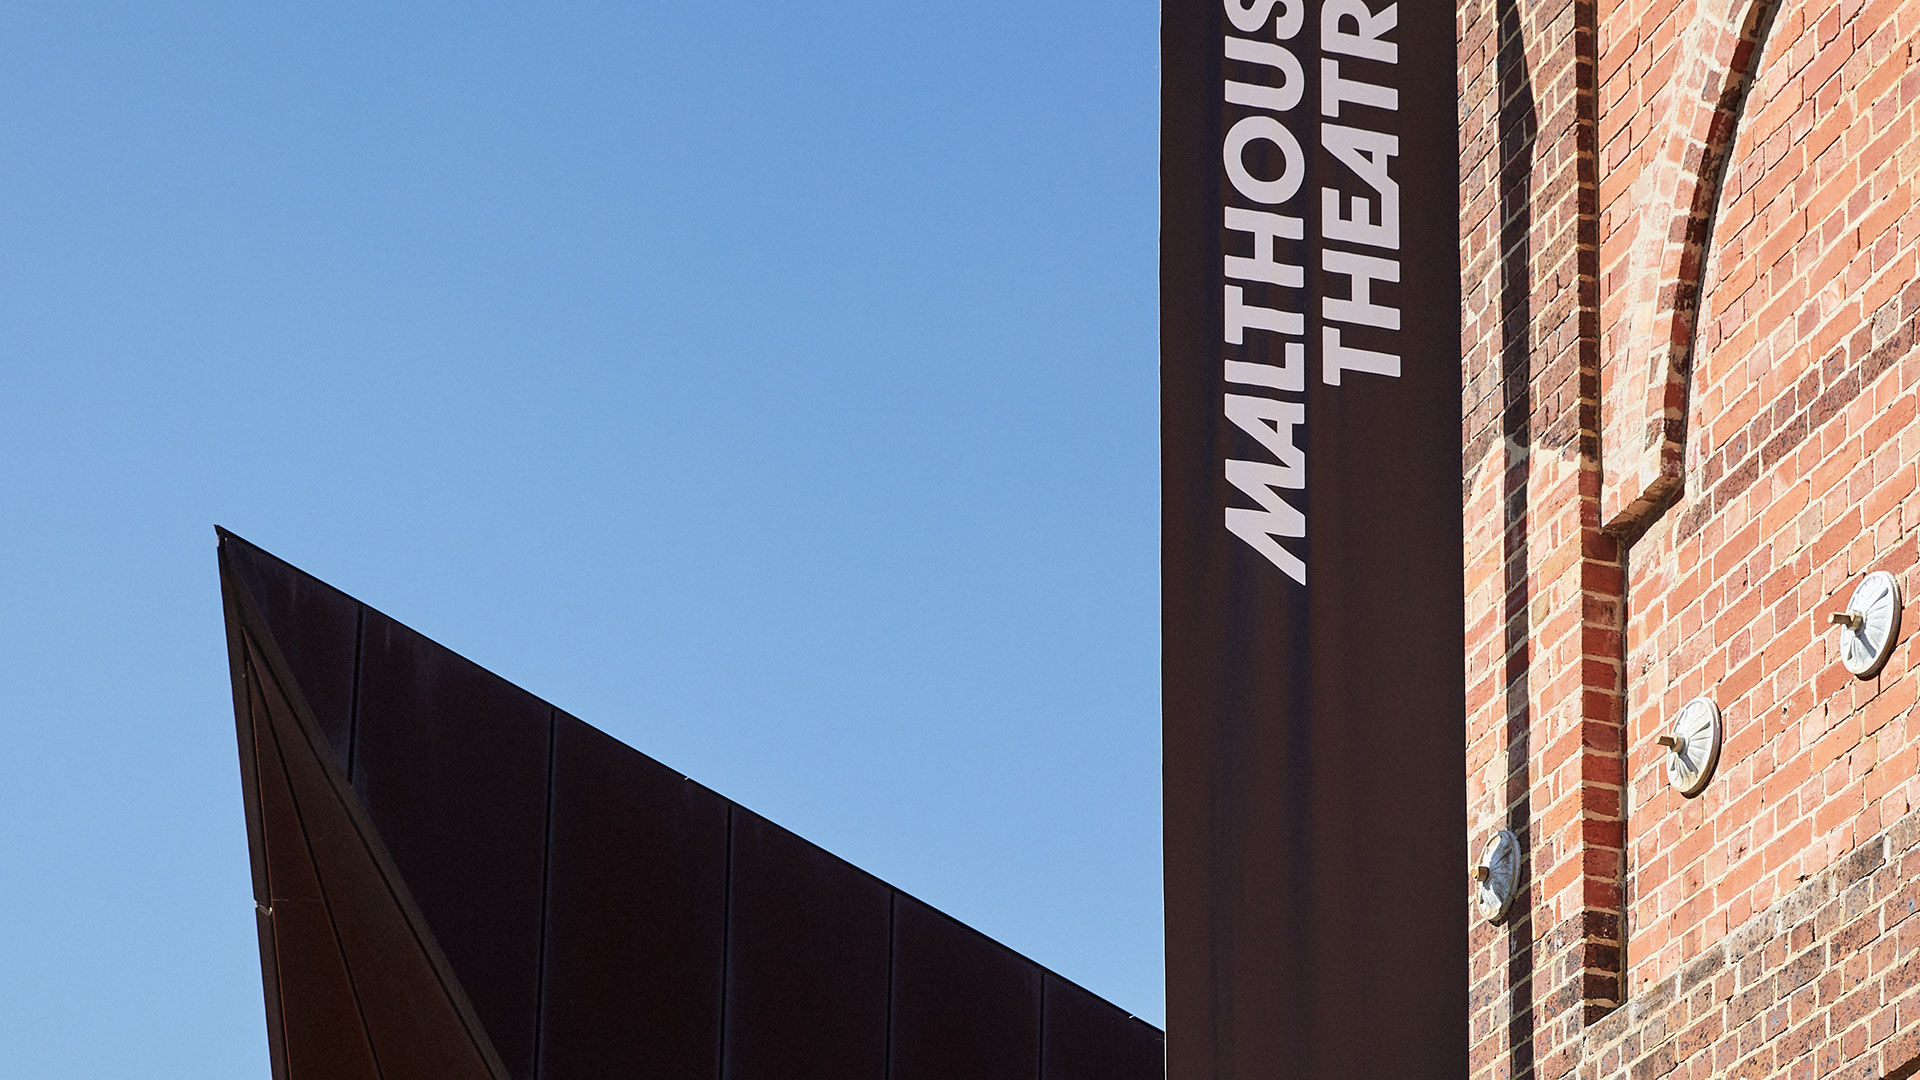 Malthouse theatre sign